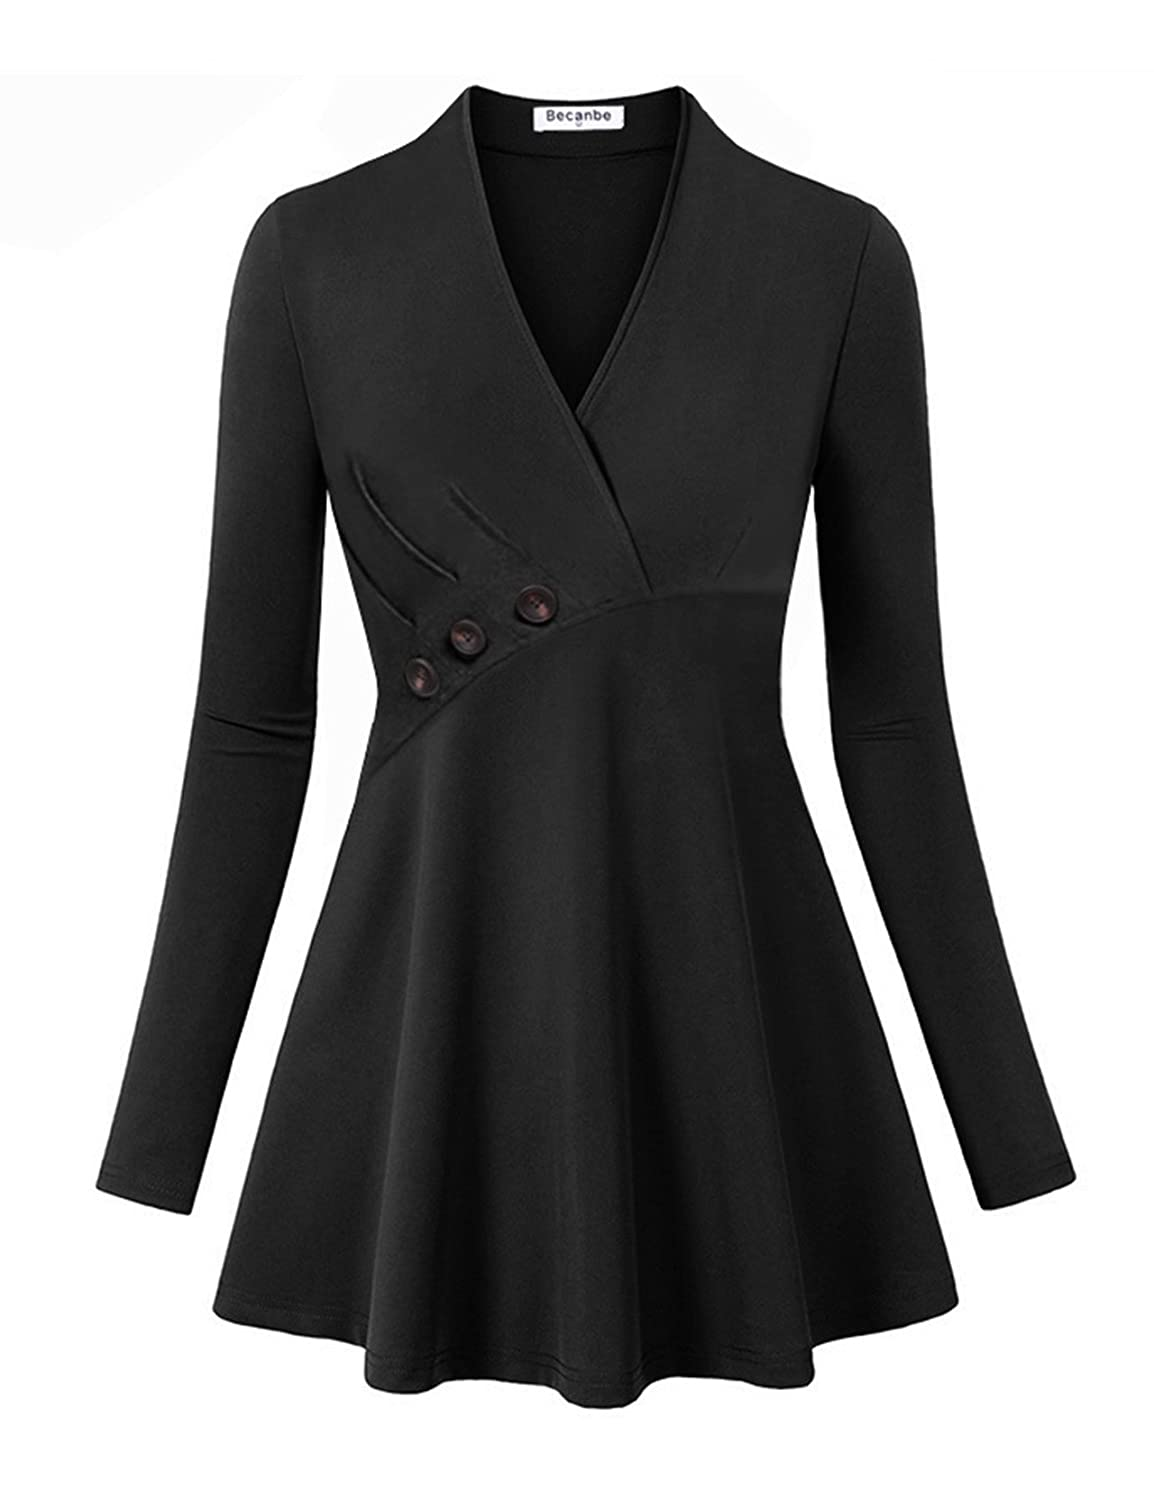 Vintage Coats & Jackets | Retro Coats and Jackets Becanbe Womens Long Sleeve V Neck Empire Line Tunic Top $25.99 AT vintagedancer.com